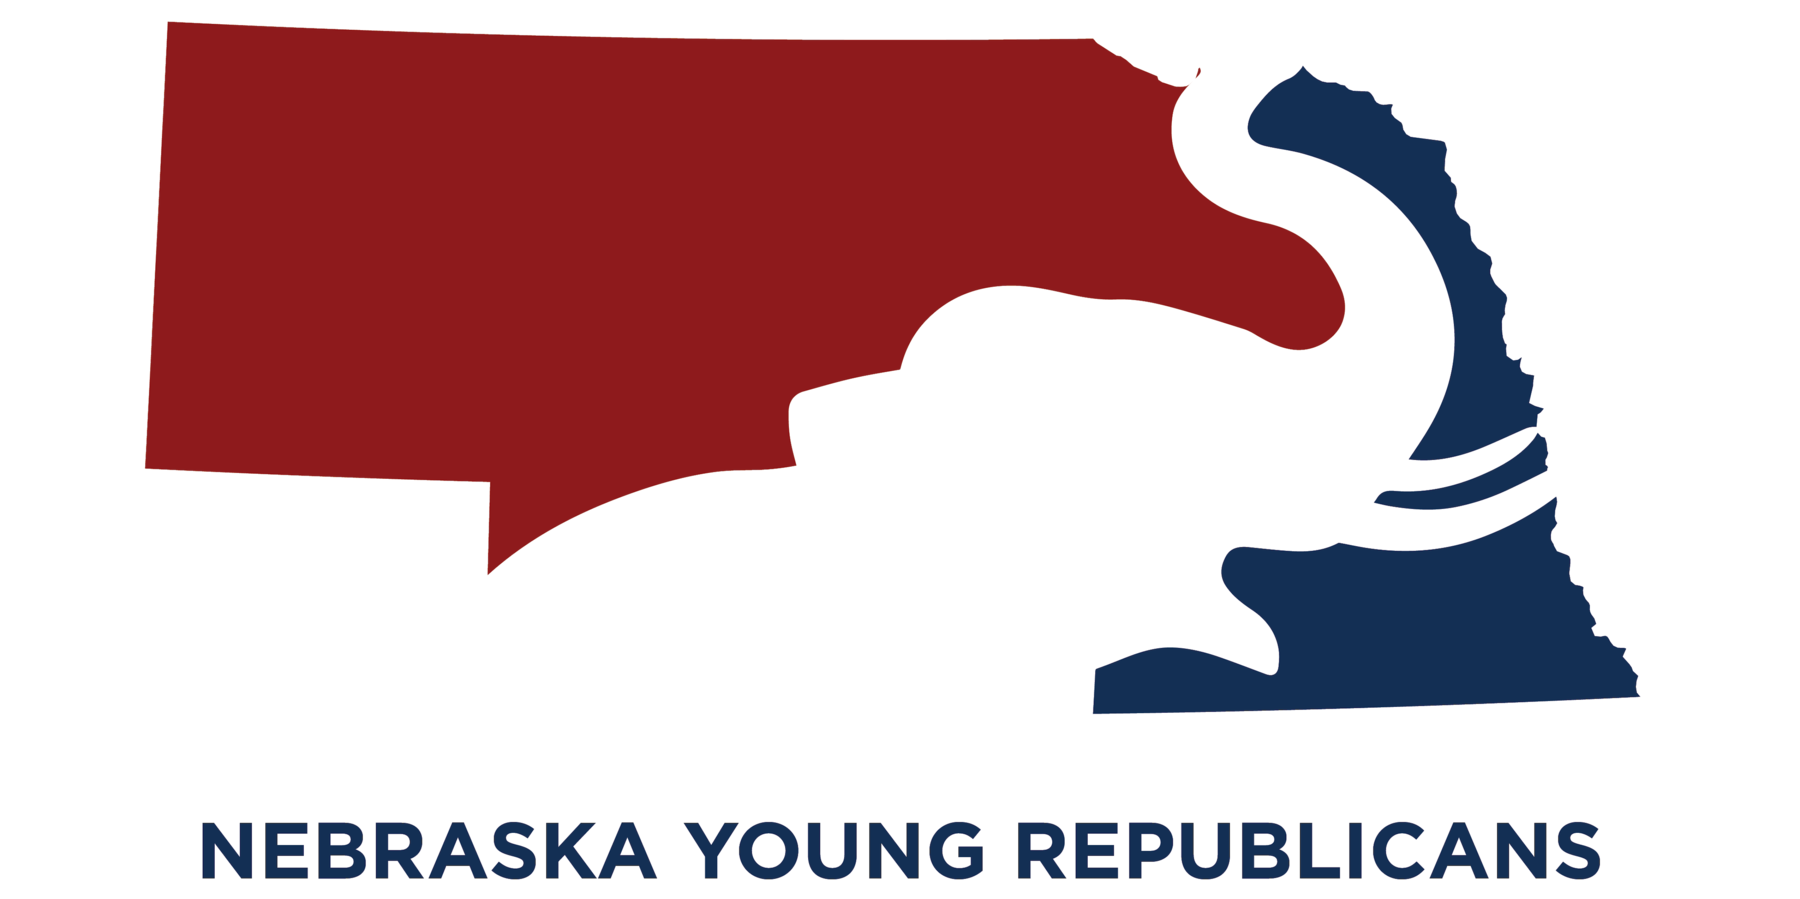 Nebraska Young Republicans: Join the Lancaster County Young Republicans